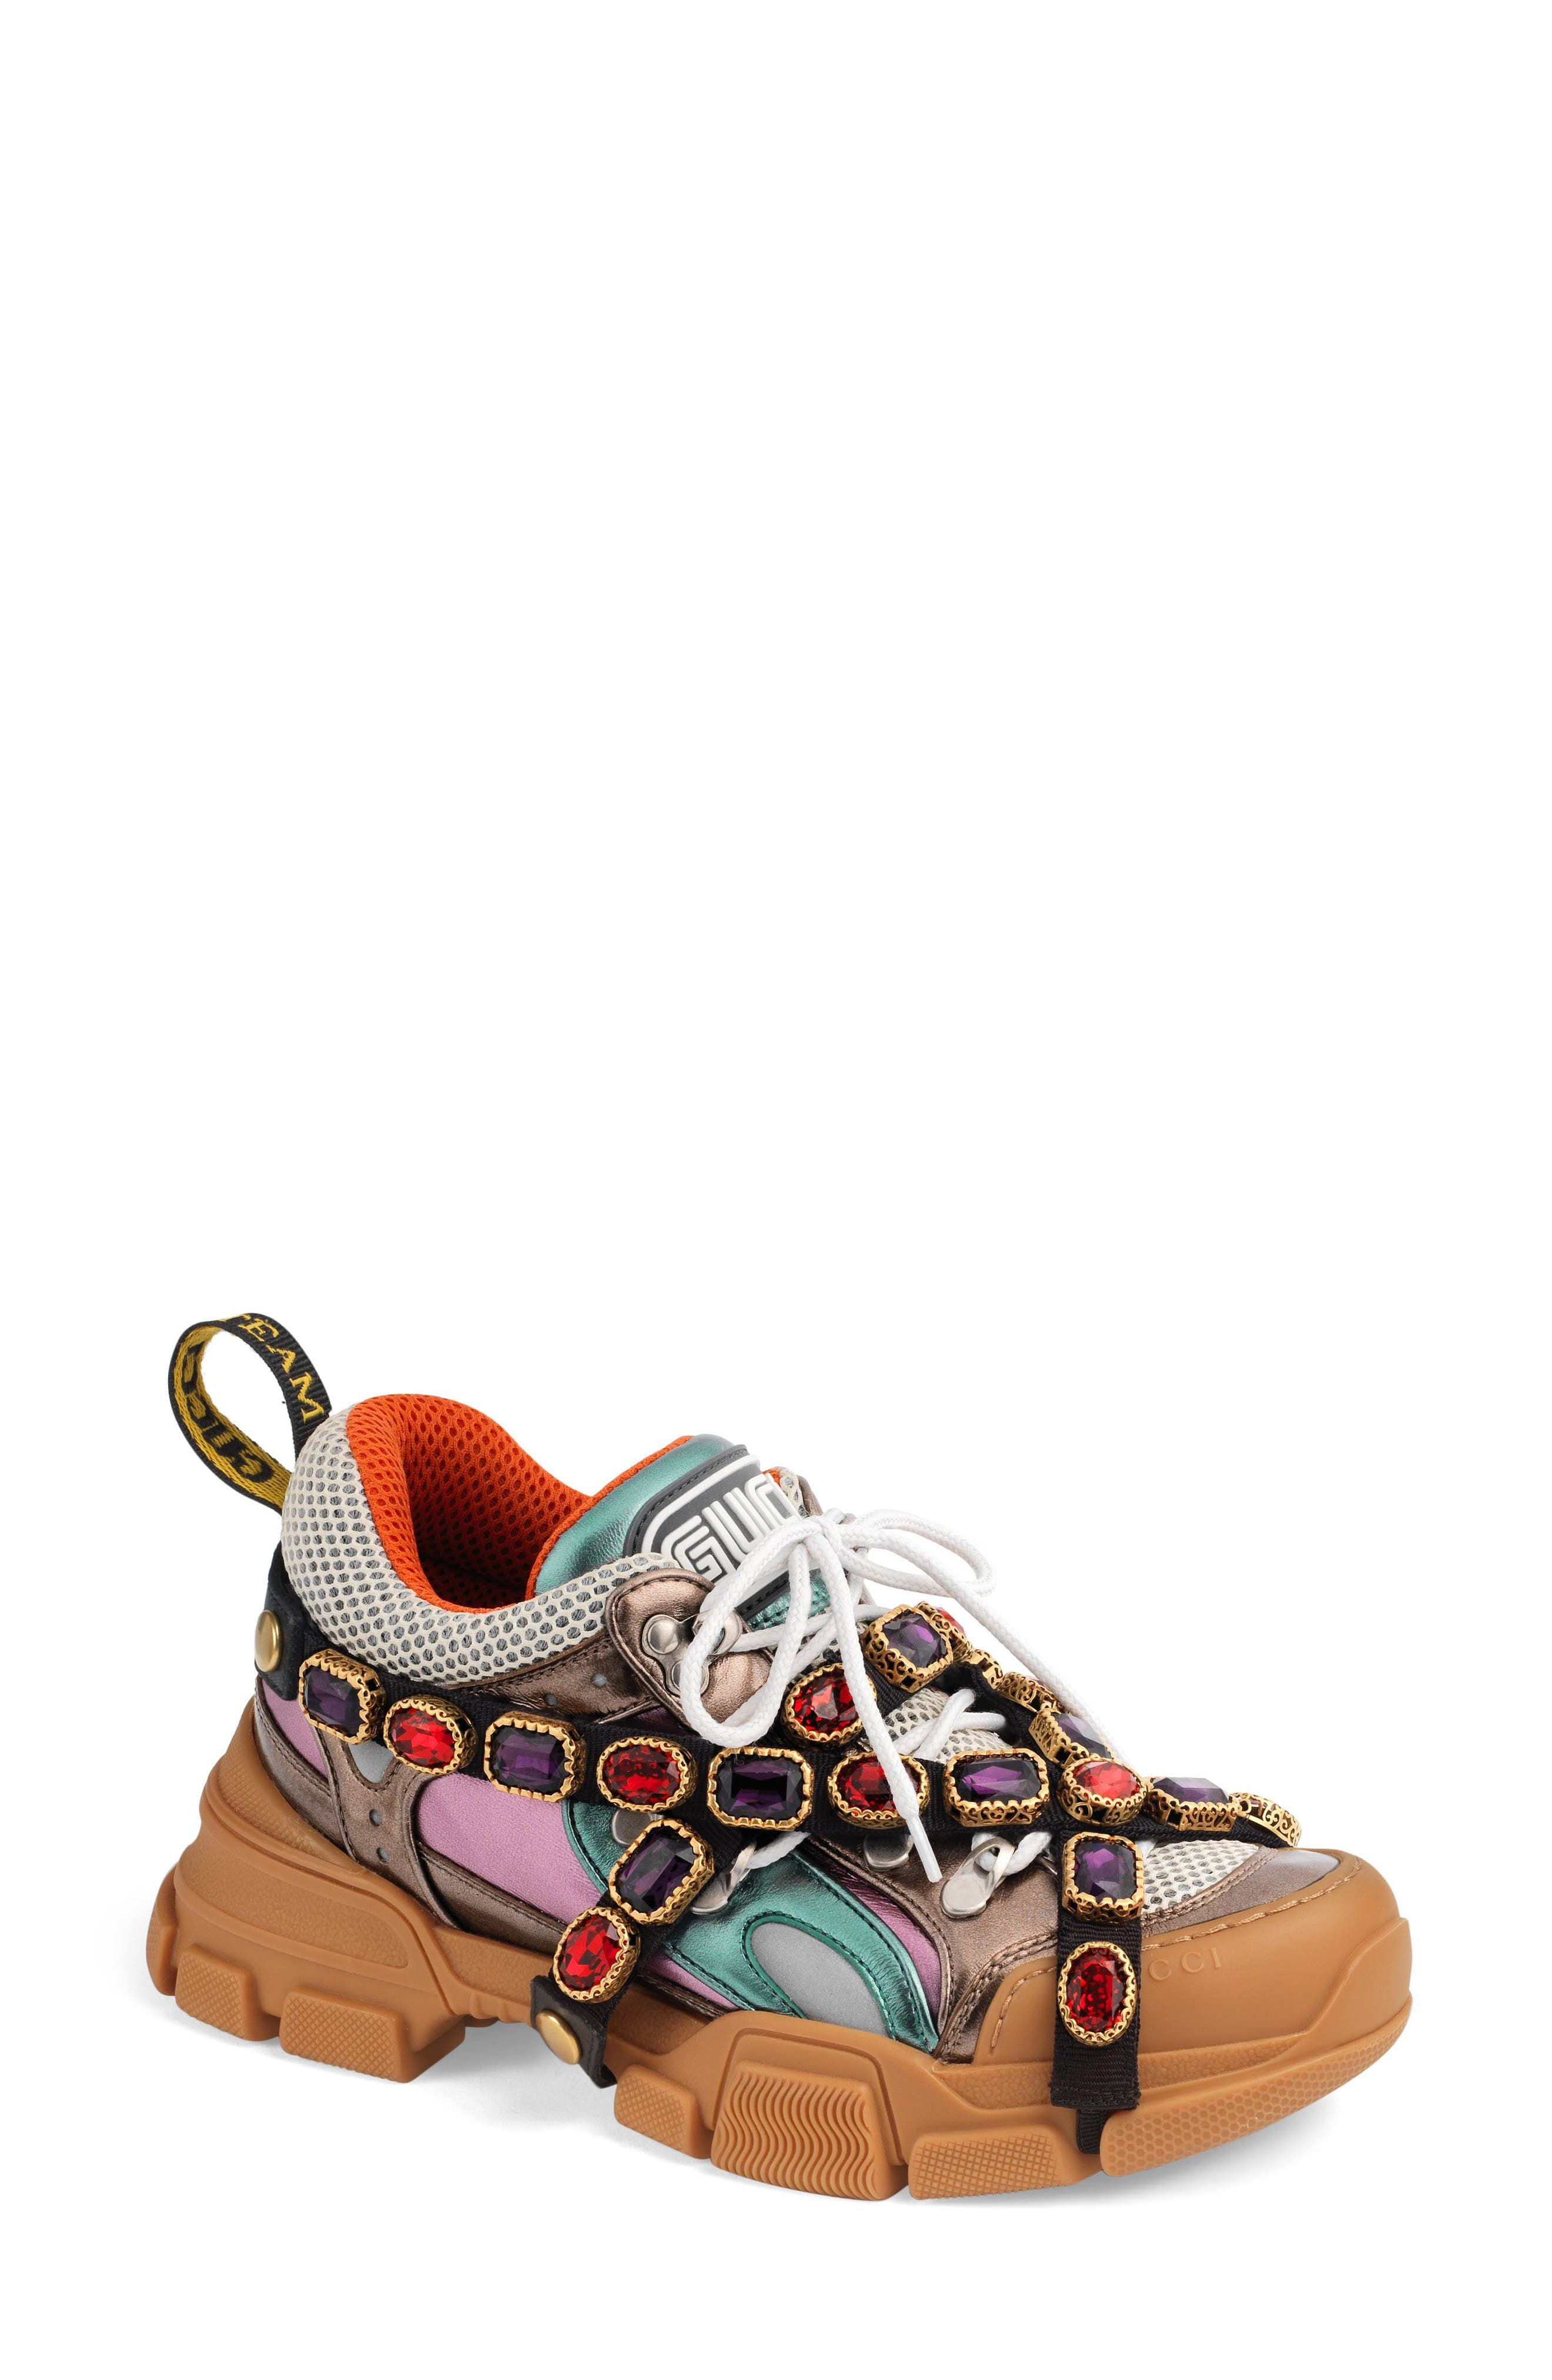 Flashtrek Jewel Embellished Sneaker,                             Main thumbnail 1, color,                             BROWN/ BLUE/ RED